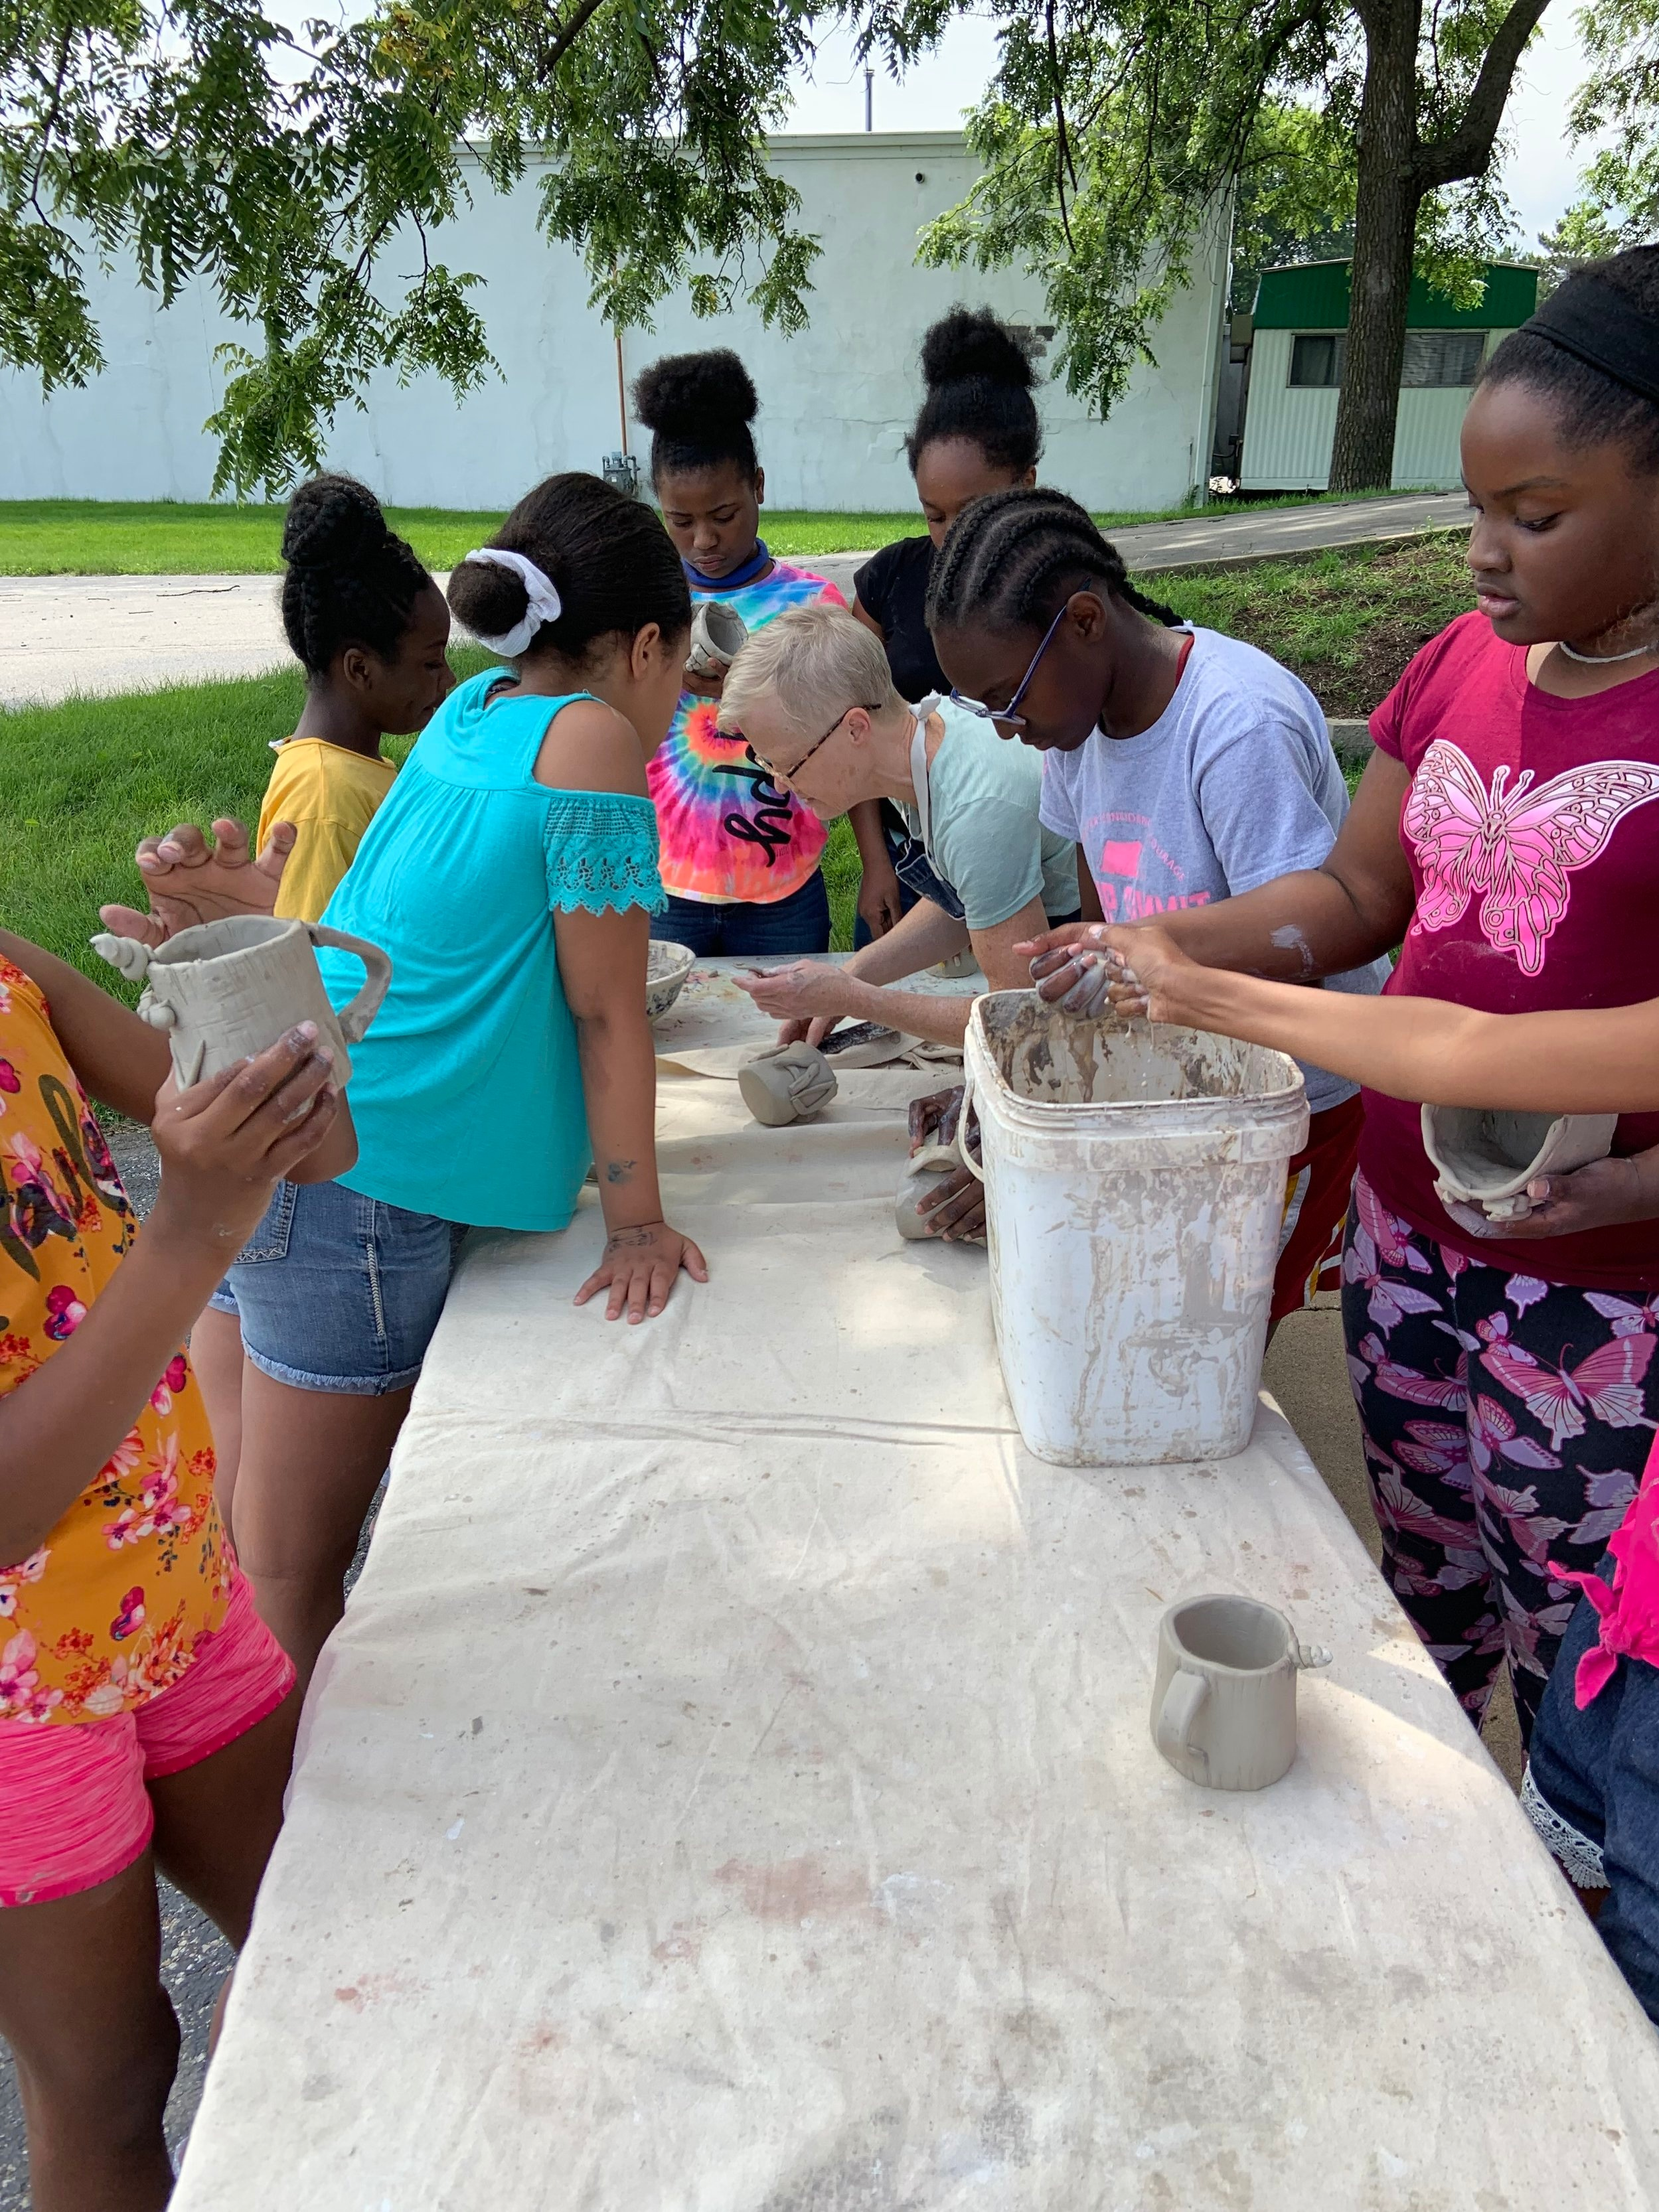 Students participating in STEAM on Wheels' Summer Camp.